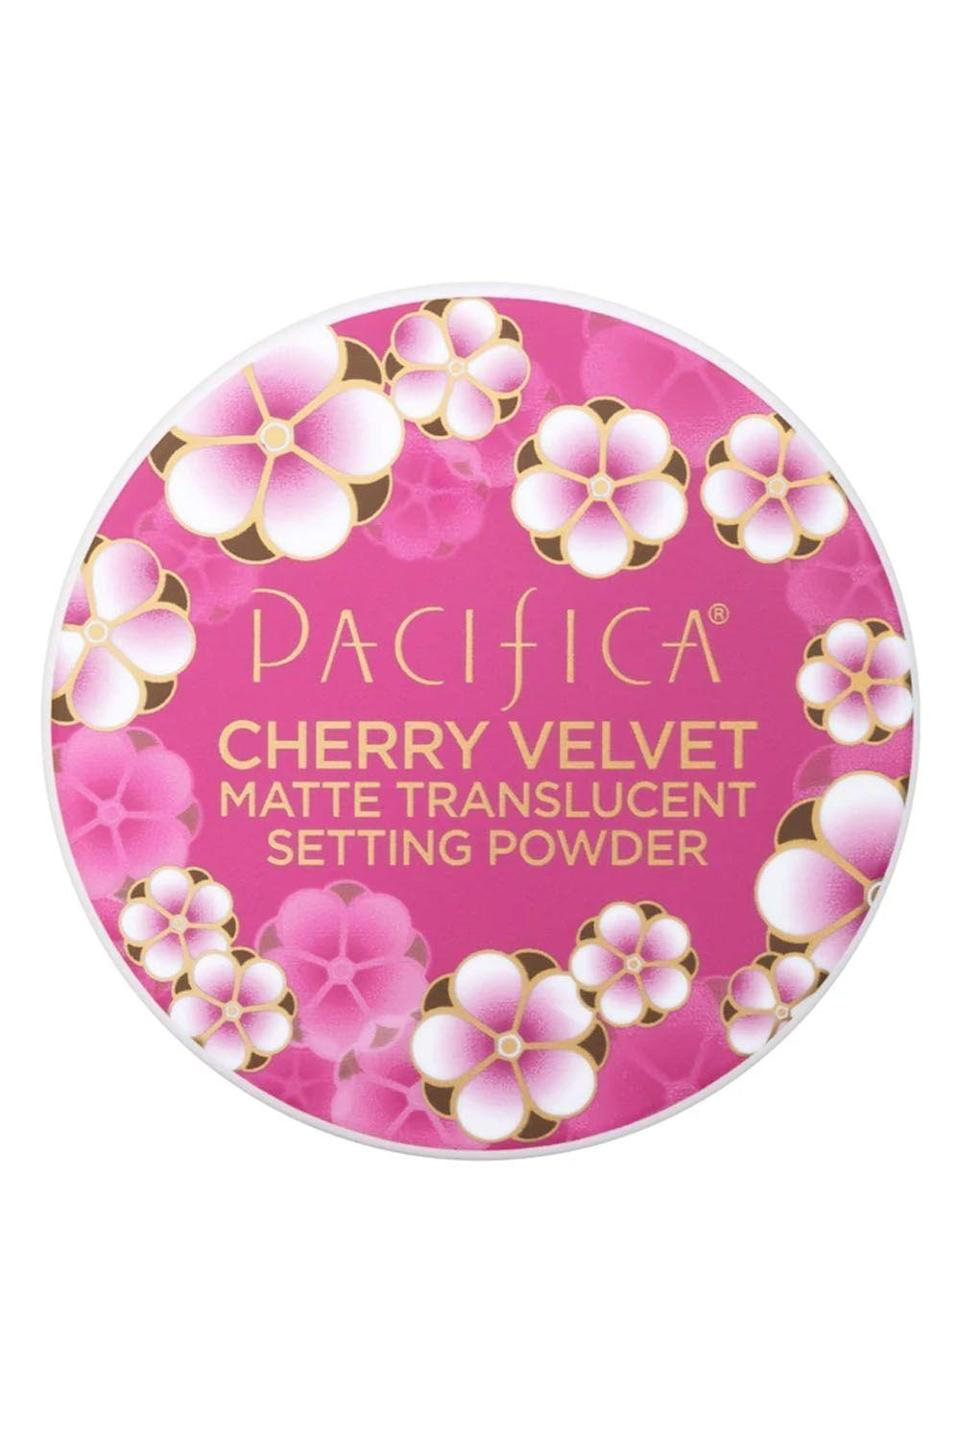 """<p><strong>Pacifica</strong></p><p>ulta.com</p><p><strong>$12.00</strong></p><p><a href=""""https://go.redirectingat.com?id=74968X1596630&url=https%3A%2F%2Fwww.ulta.com%2Fcherry-velvet-matte-setting-powder%3FproductId%3Dpimprod2003538&sref=https%3A%2F%2Fwww.cosmopolitan.com%2Fstyle-beauty%2Fbeauty%2Fg32729898%2Fbest-drugstore-setting-powder%2F"""" rel=""""nofollow noopener"""" target=""""_blank"""" data-ylk=""""slk:Shop Now"""" class=""""link rapid-noclick-resp"""">Shop Now</a></p><p>IMO, you should be using a setting <a href=""""https://www.cosmopolitan.com/style-beauty/beauty/g26289172/best-powder-face-foundation/"""" rel=""""nofollow noopener"""" target=""""_blank"""" data-ylk=""""slk:powder"""" class=""""link rapid-noclick-resp"""">powder</a> even if your skin doesn't get super oily. This formula won't settle into your lines or leave you with dry patches, and thanks to moisturizing ingredients like <strong>coconut water, it also helps hydrate dry, flaky skin.</strong><br></p>"""